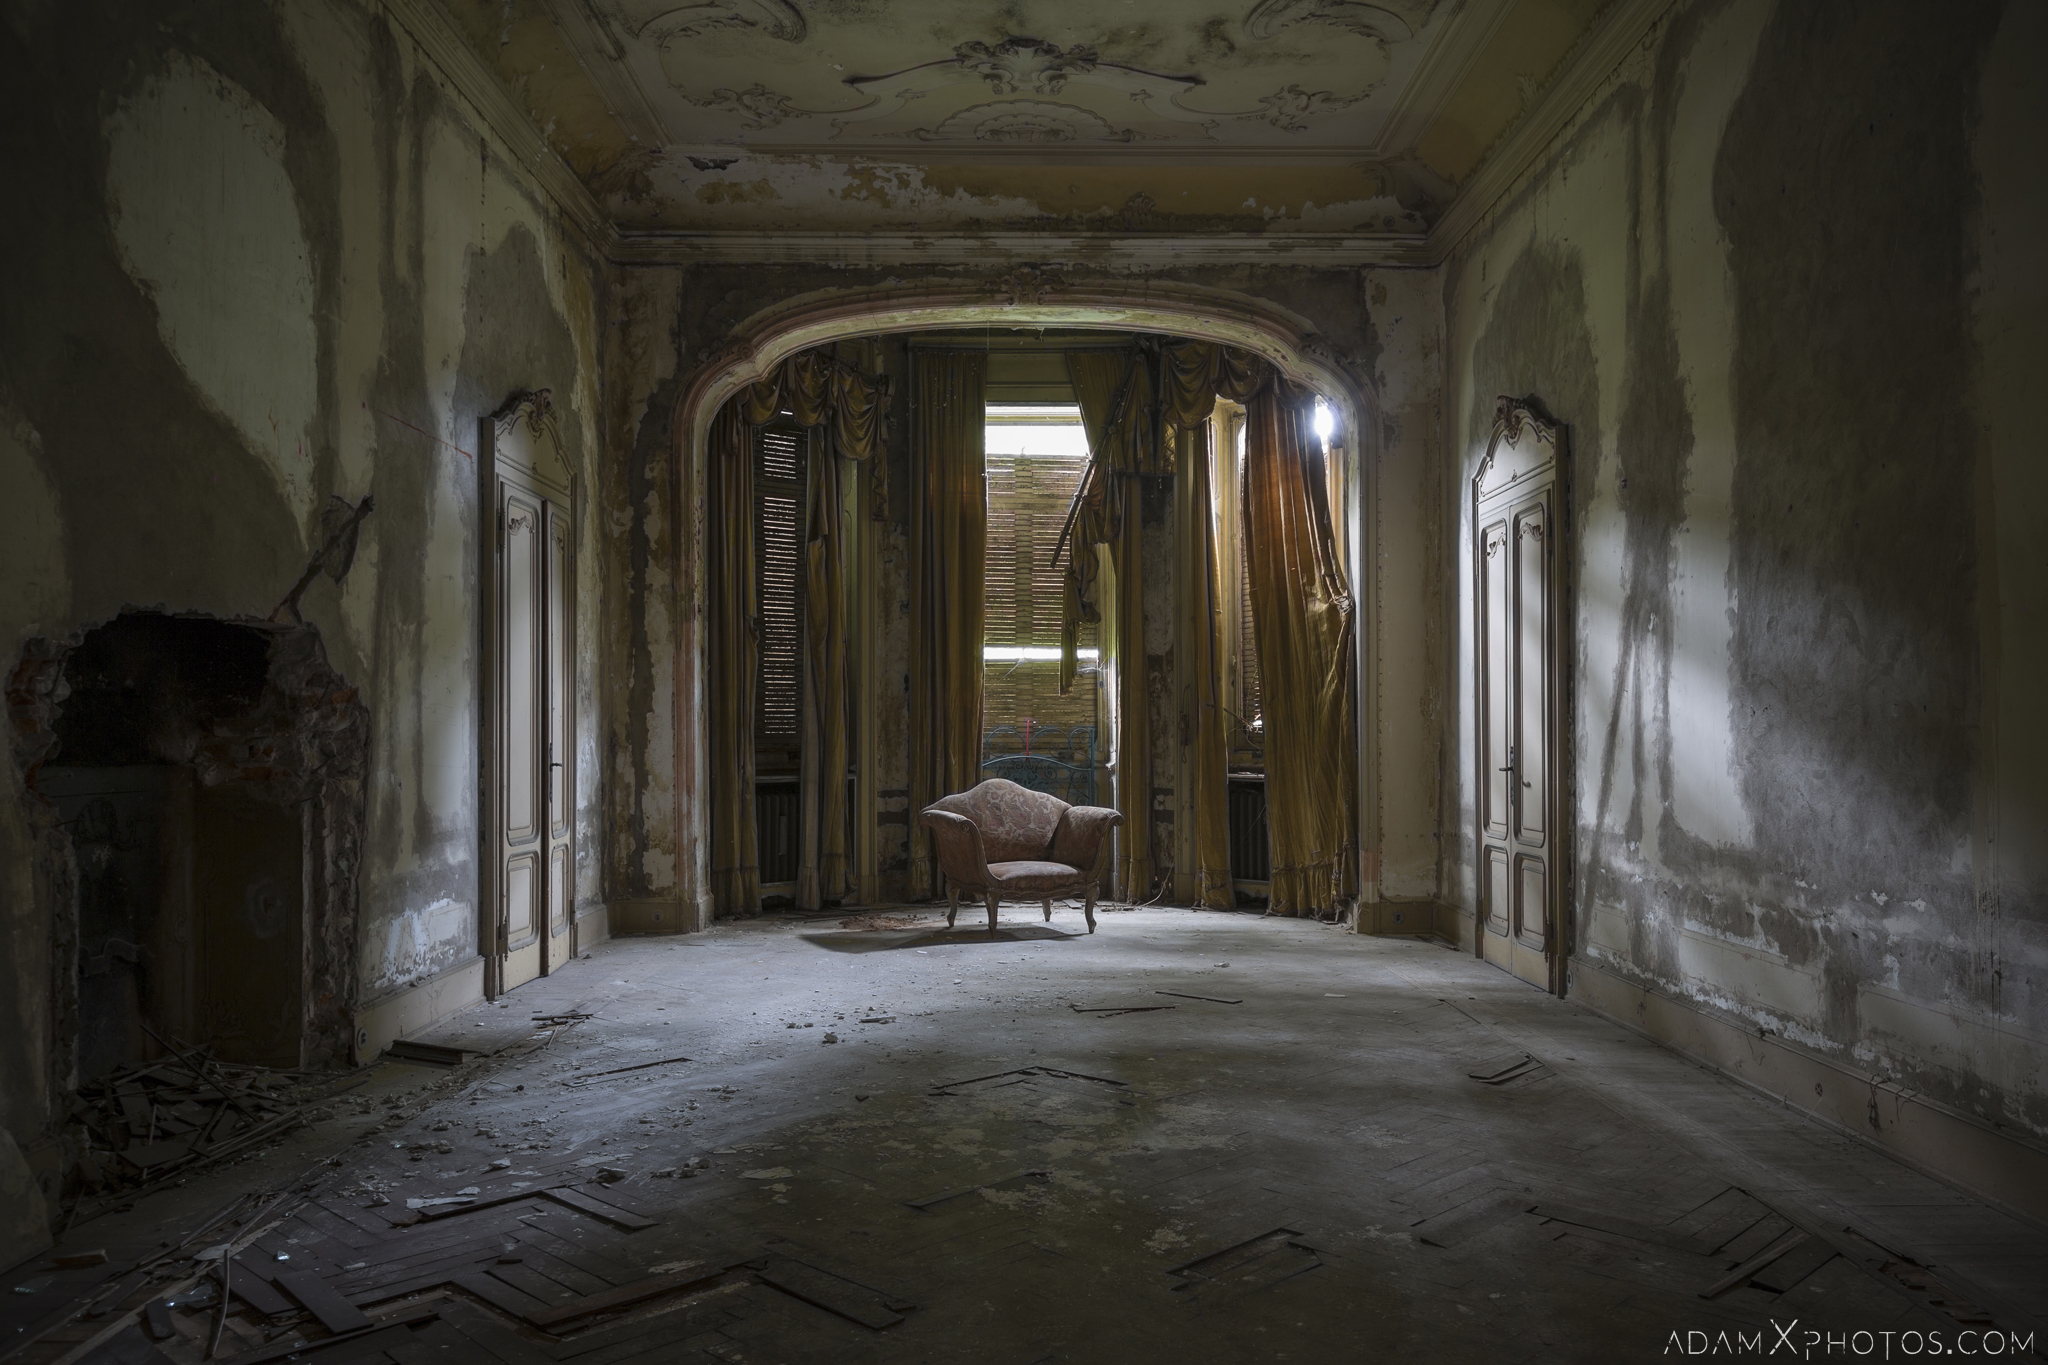 Abandoned chair drawing room parquet flooring peeling paint Villa Pesenti P Urbex Adam X Urban Exploration Italy Italia Access 2016 Abandoned decay lost forgotten derelict location creepy haunting eerie